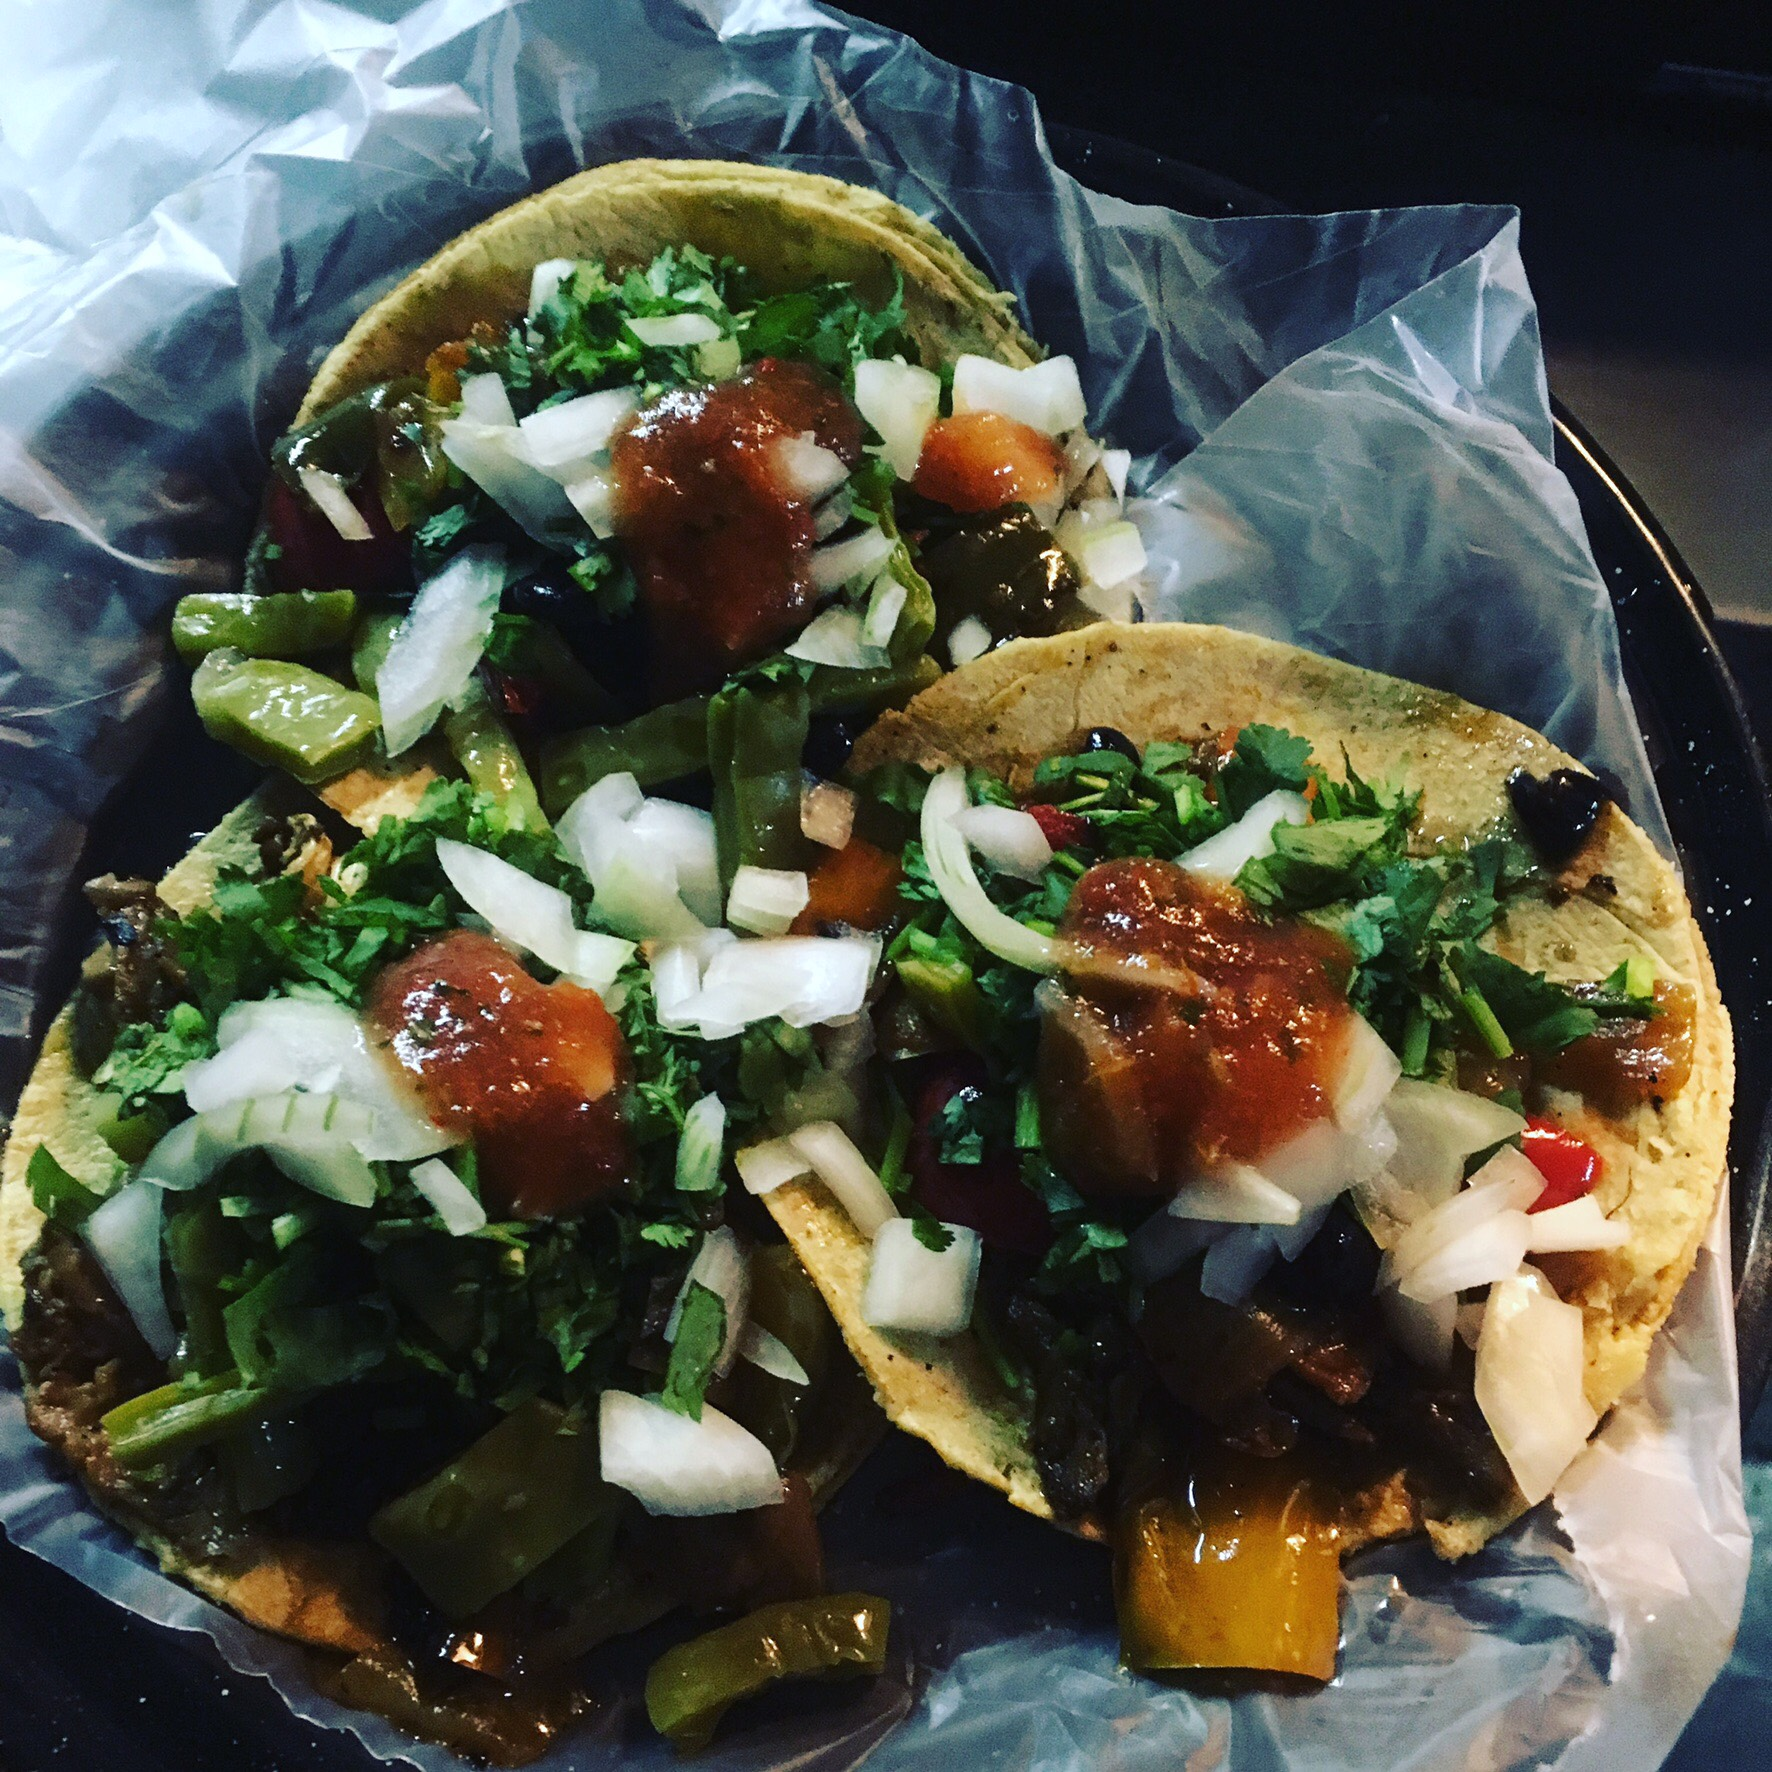 Tacos with salsa onions vegetables and cilantro